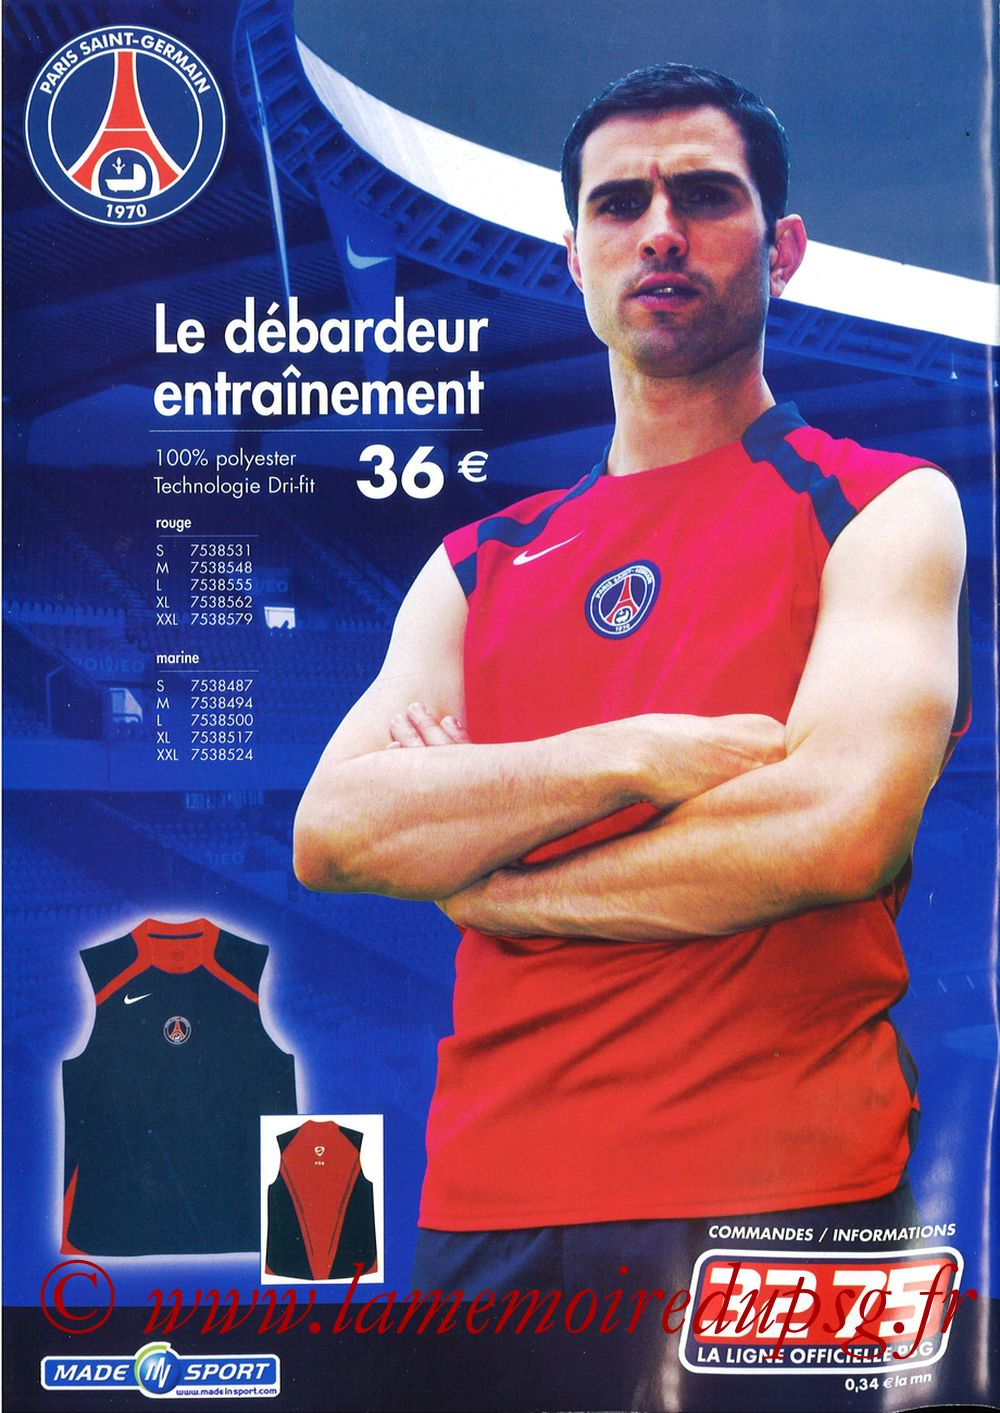 Catalogue PSG - 2005-06b - Page 08